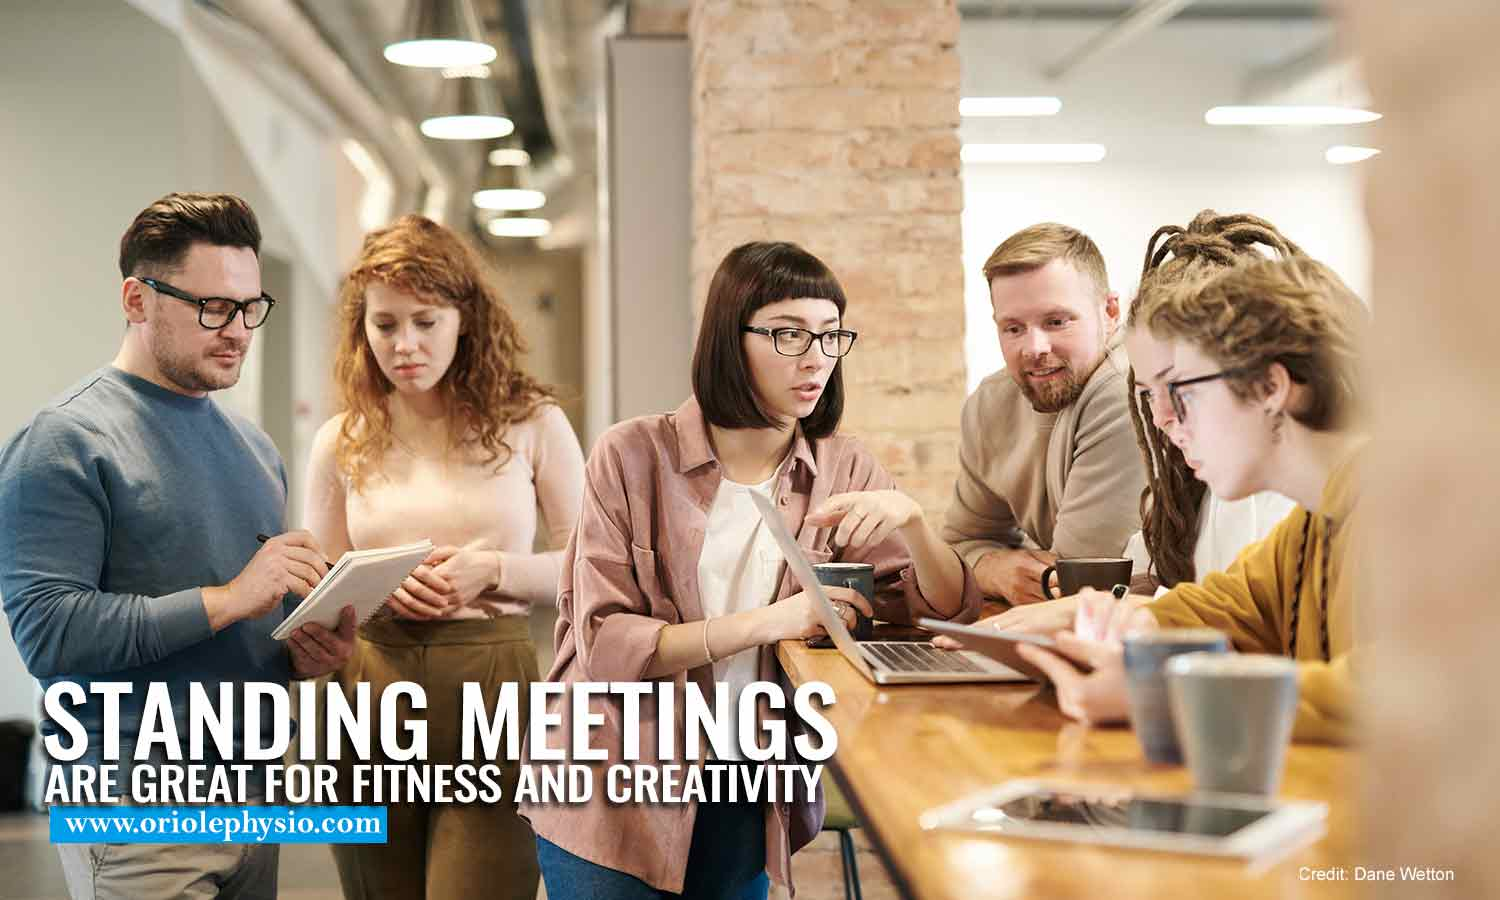 Standing meetings are great for fitness and creativity